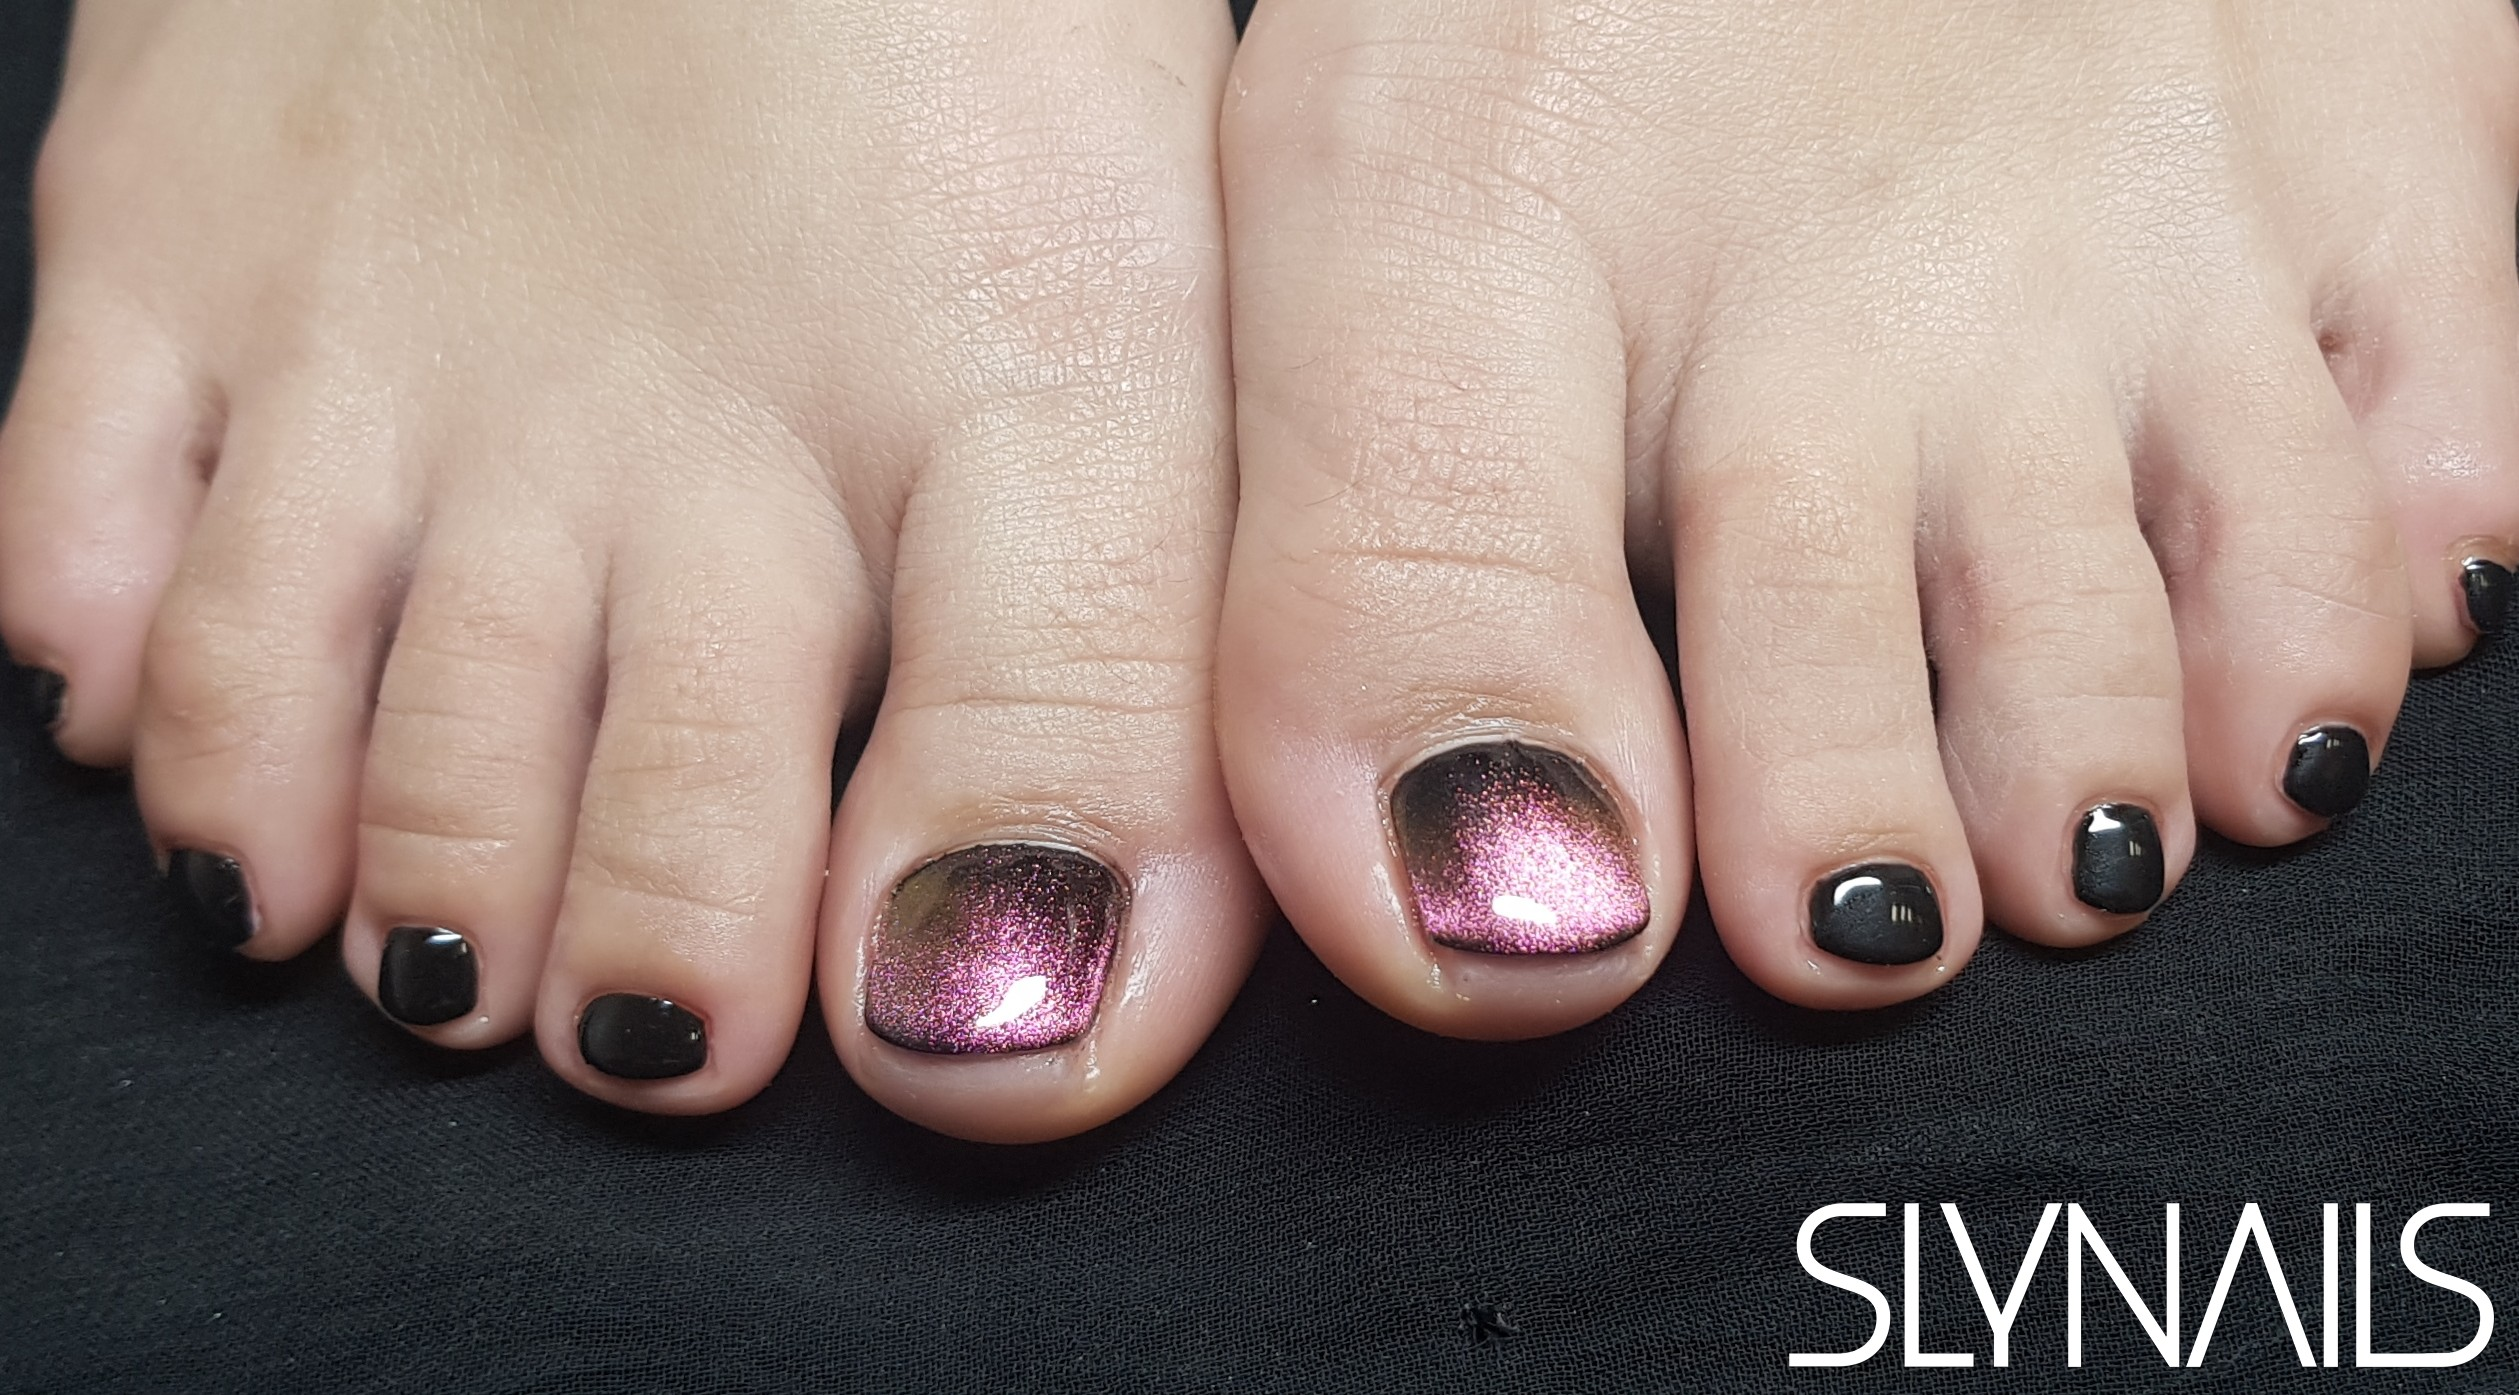 Gel-lac on toes, Black, One color, Magnetic